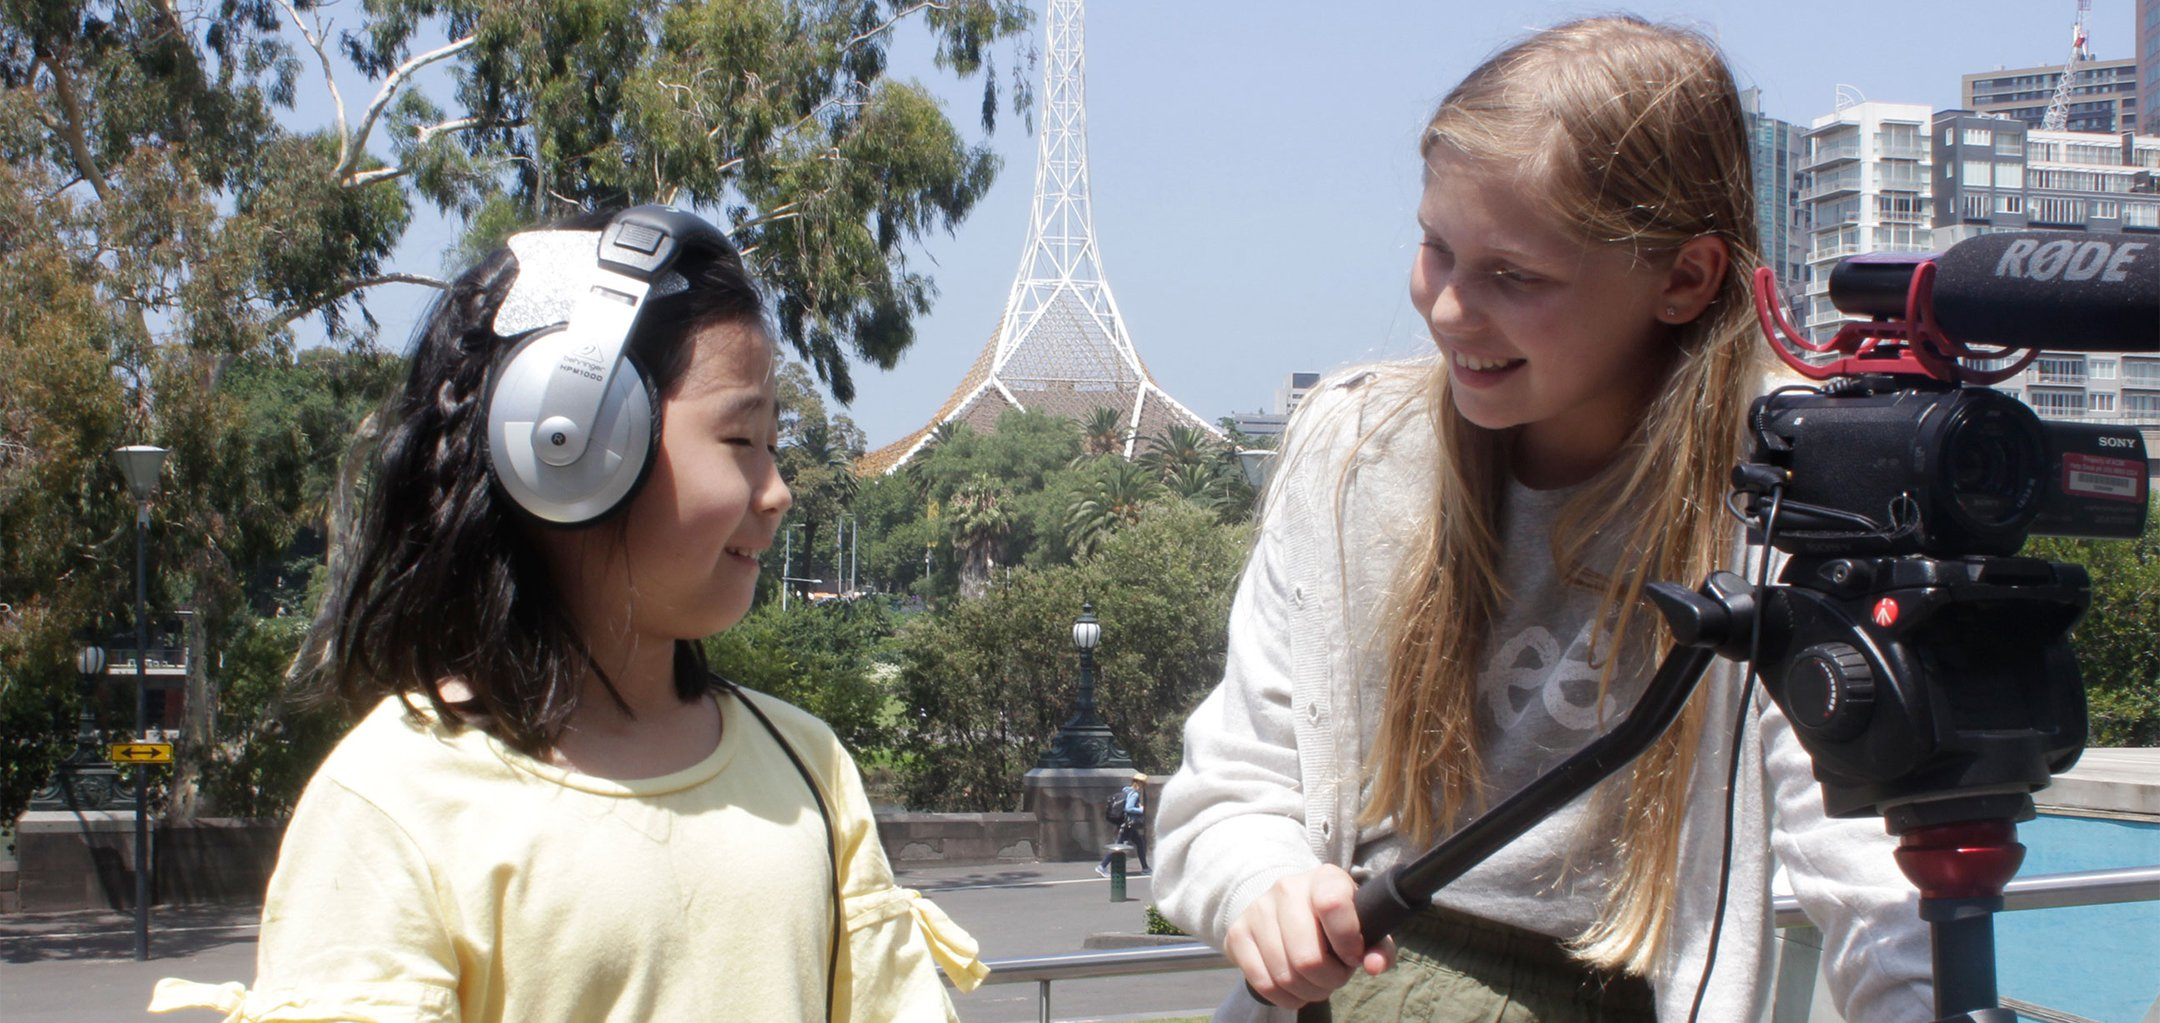 Two young girls operating camera equipment outside the Arts Centre in Melbourne